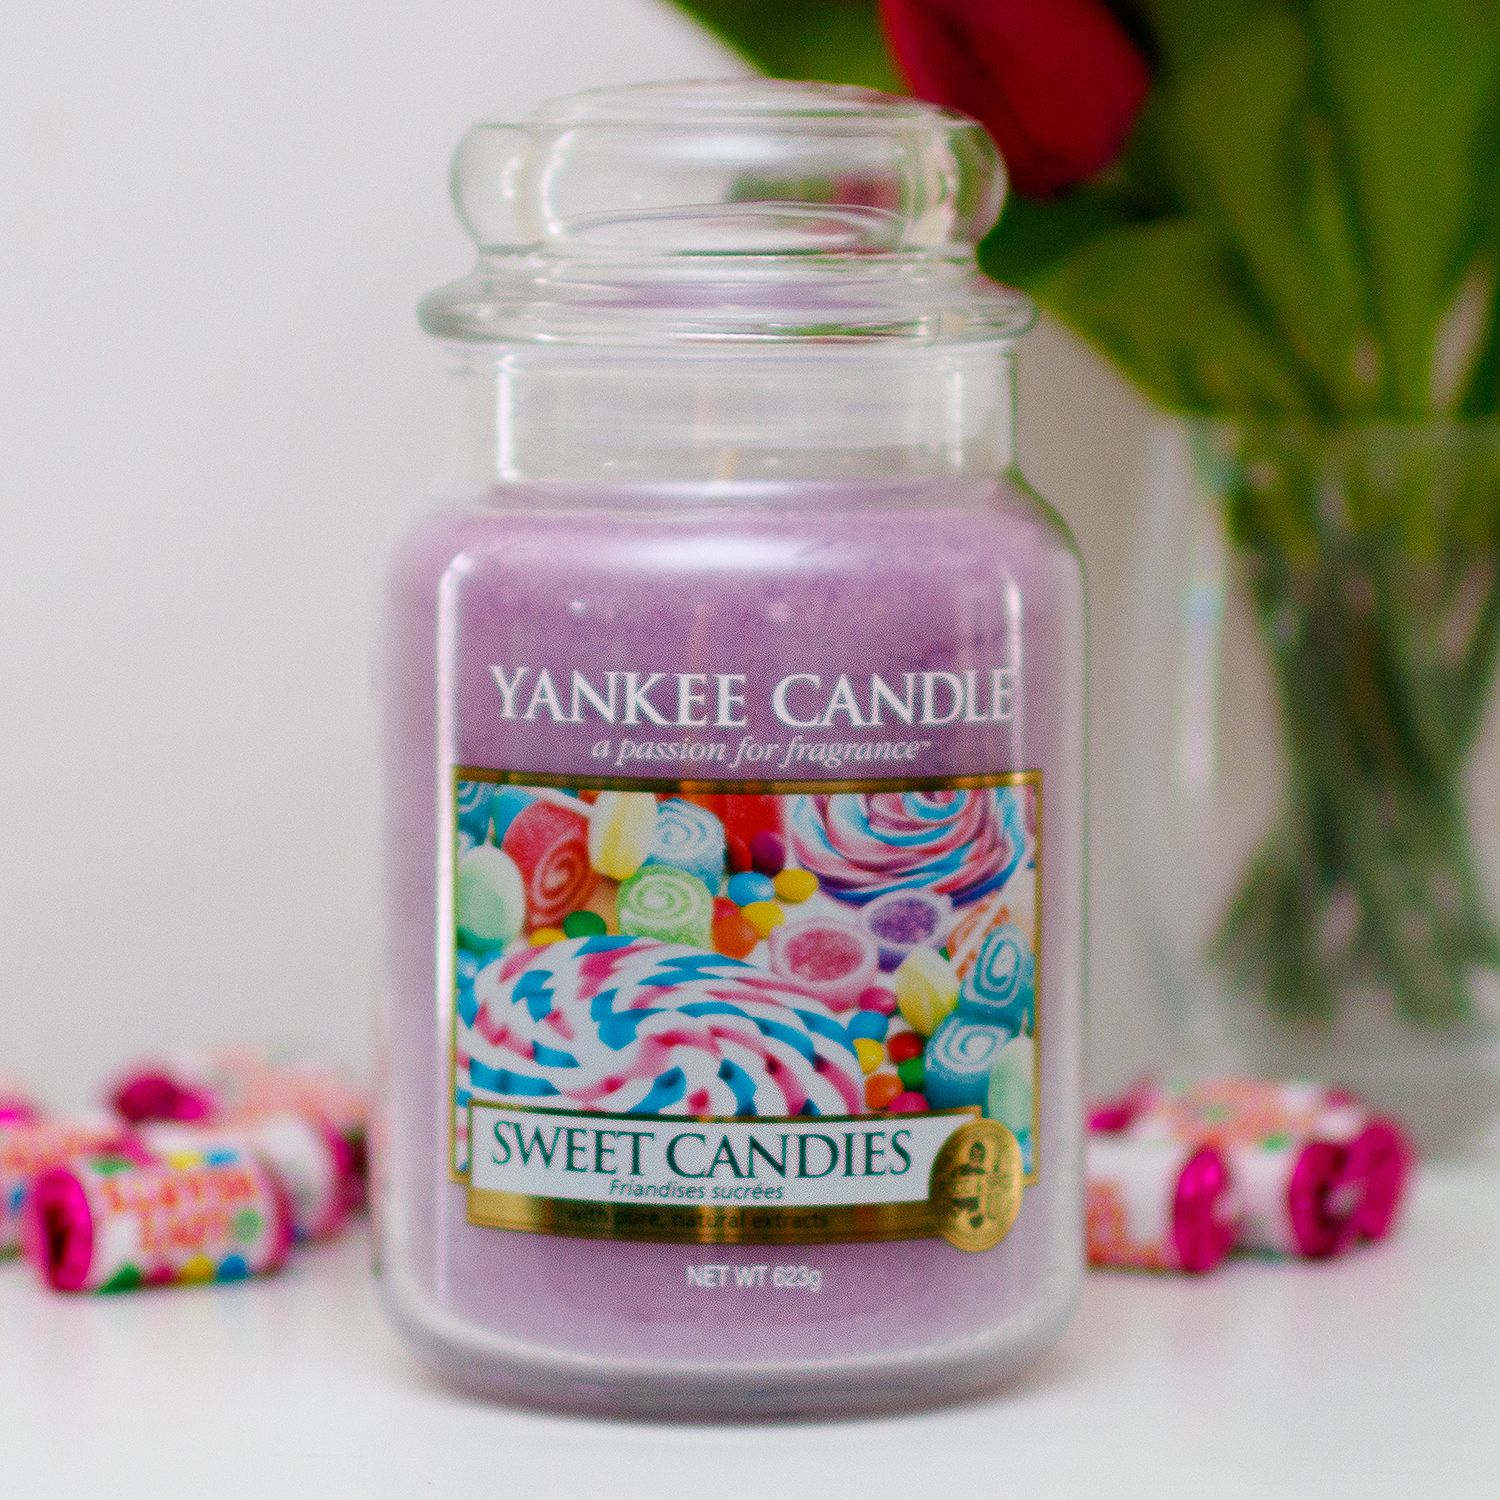 Yankee Candle Sweet Candies Yankee Candle Candles Sweet Candy